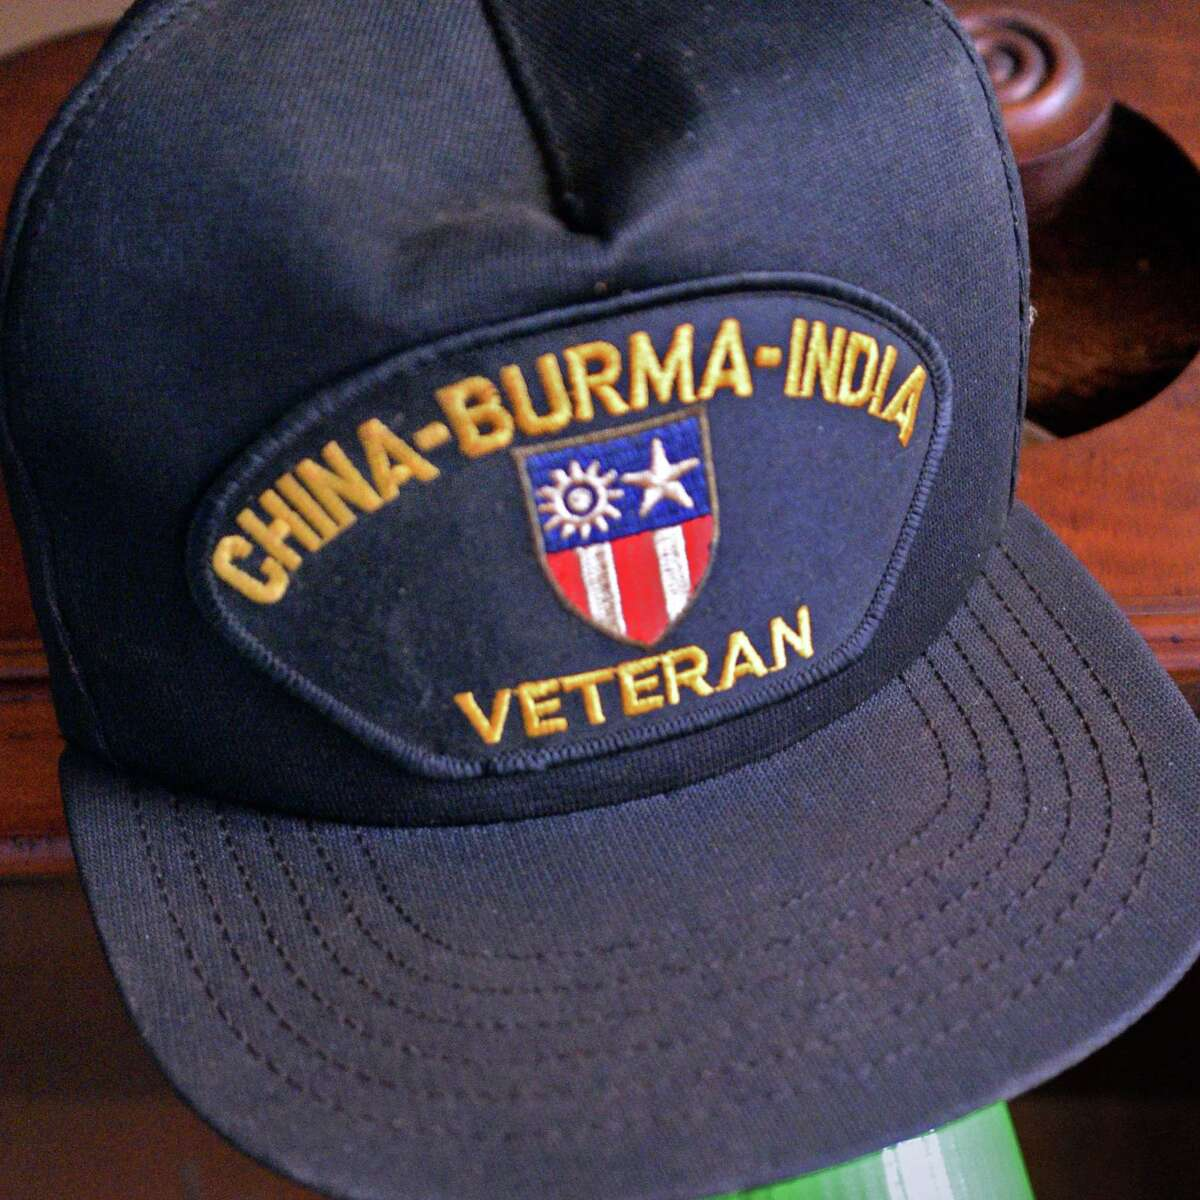 A China-Burma-India veteran's cap belonging World War II member of the 14th Army Air Force's Flying Tigers Jack Gordon, 95, in the study of his rural home Thursday May 19, 2016 in Broome, NY. Gordon was a senior navigator on a C47 flying over